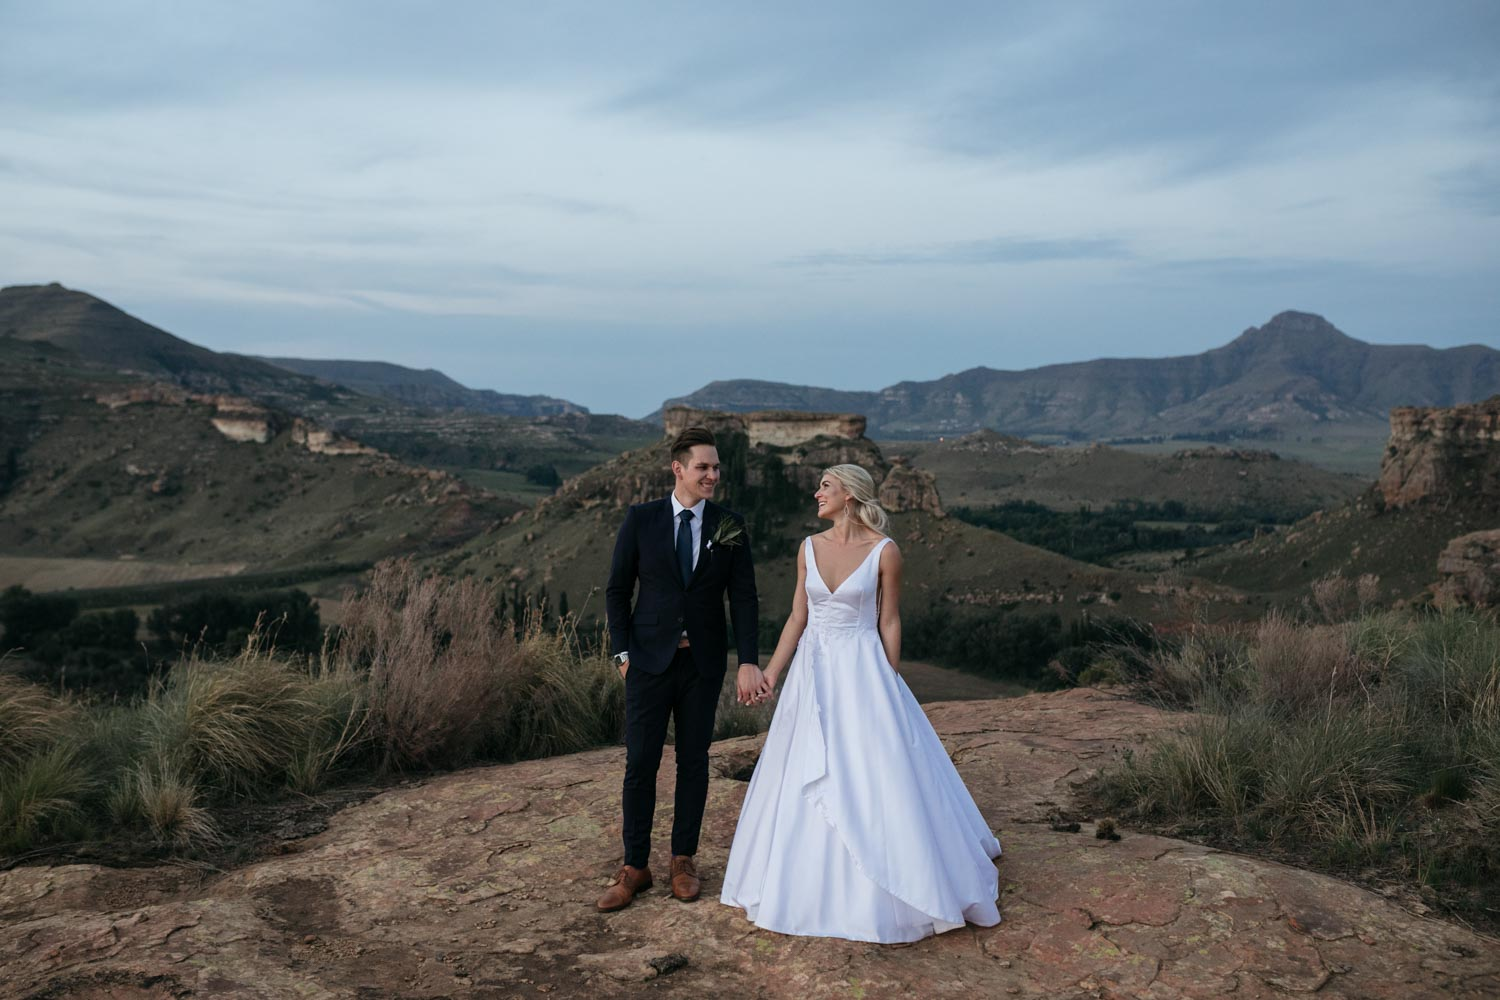 Epic Dusk Mountain Scene Bride and Groom Hold Hands